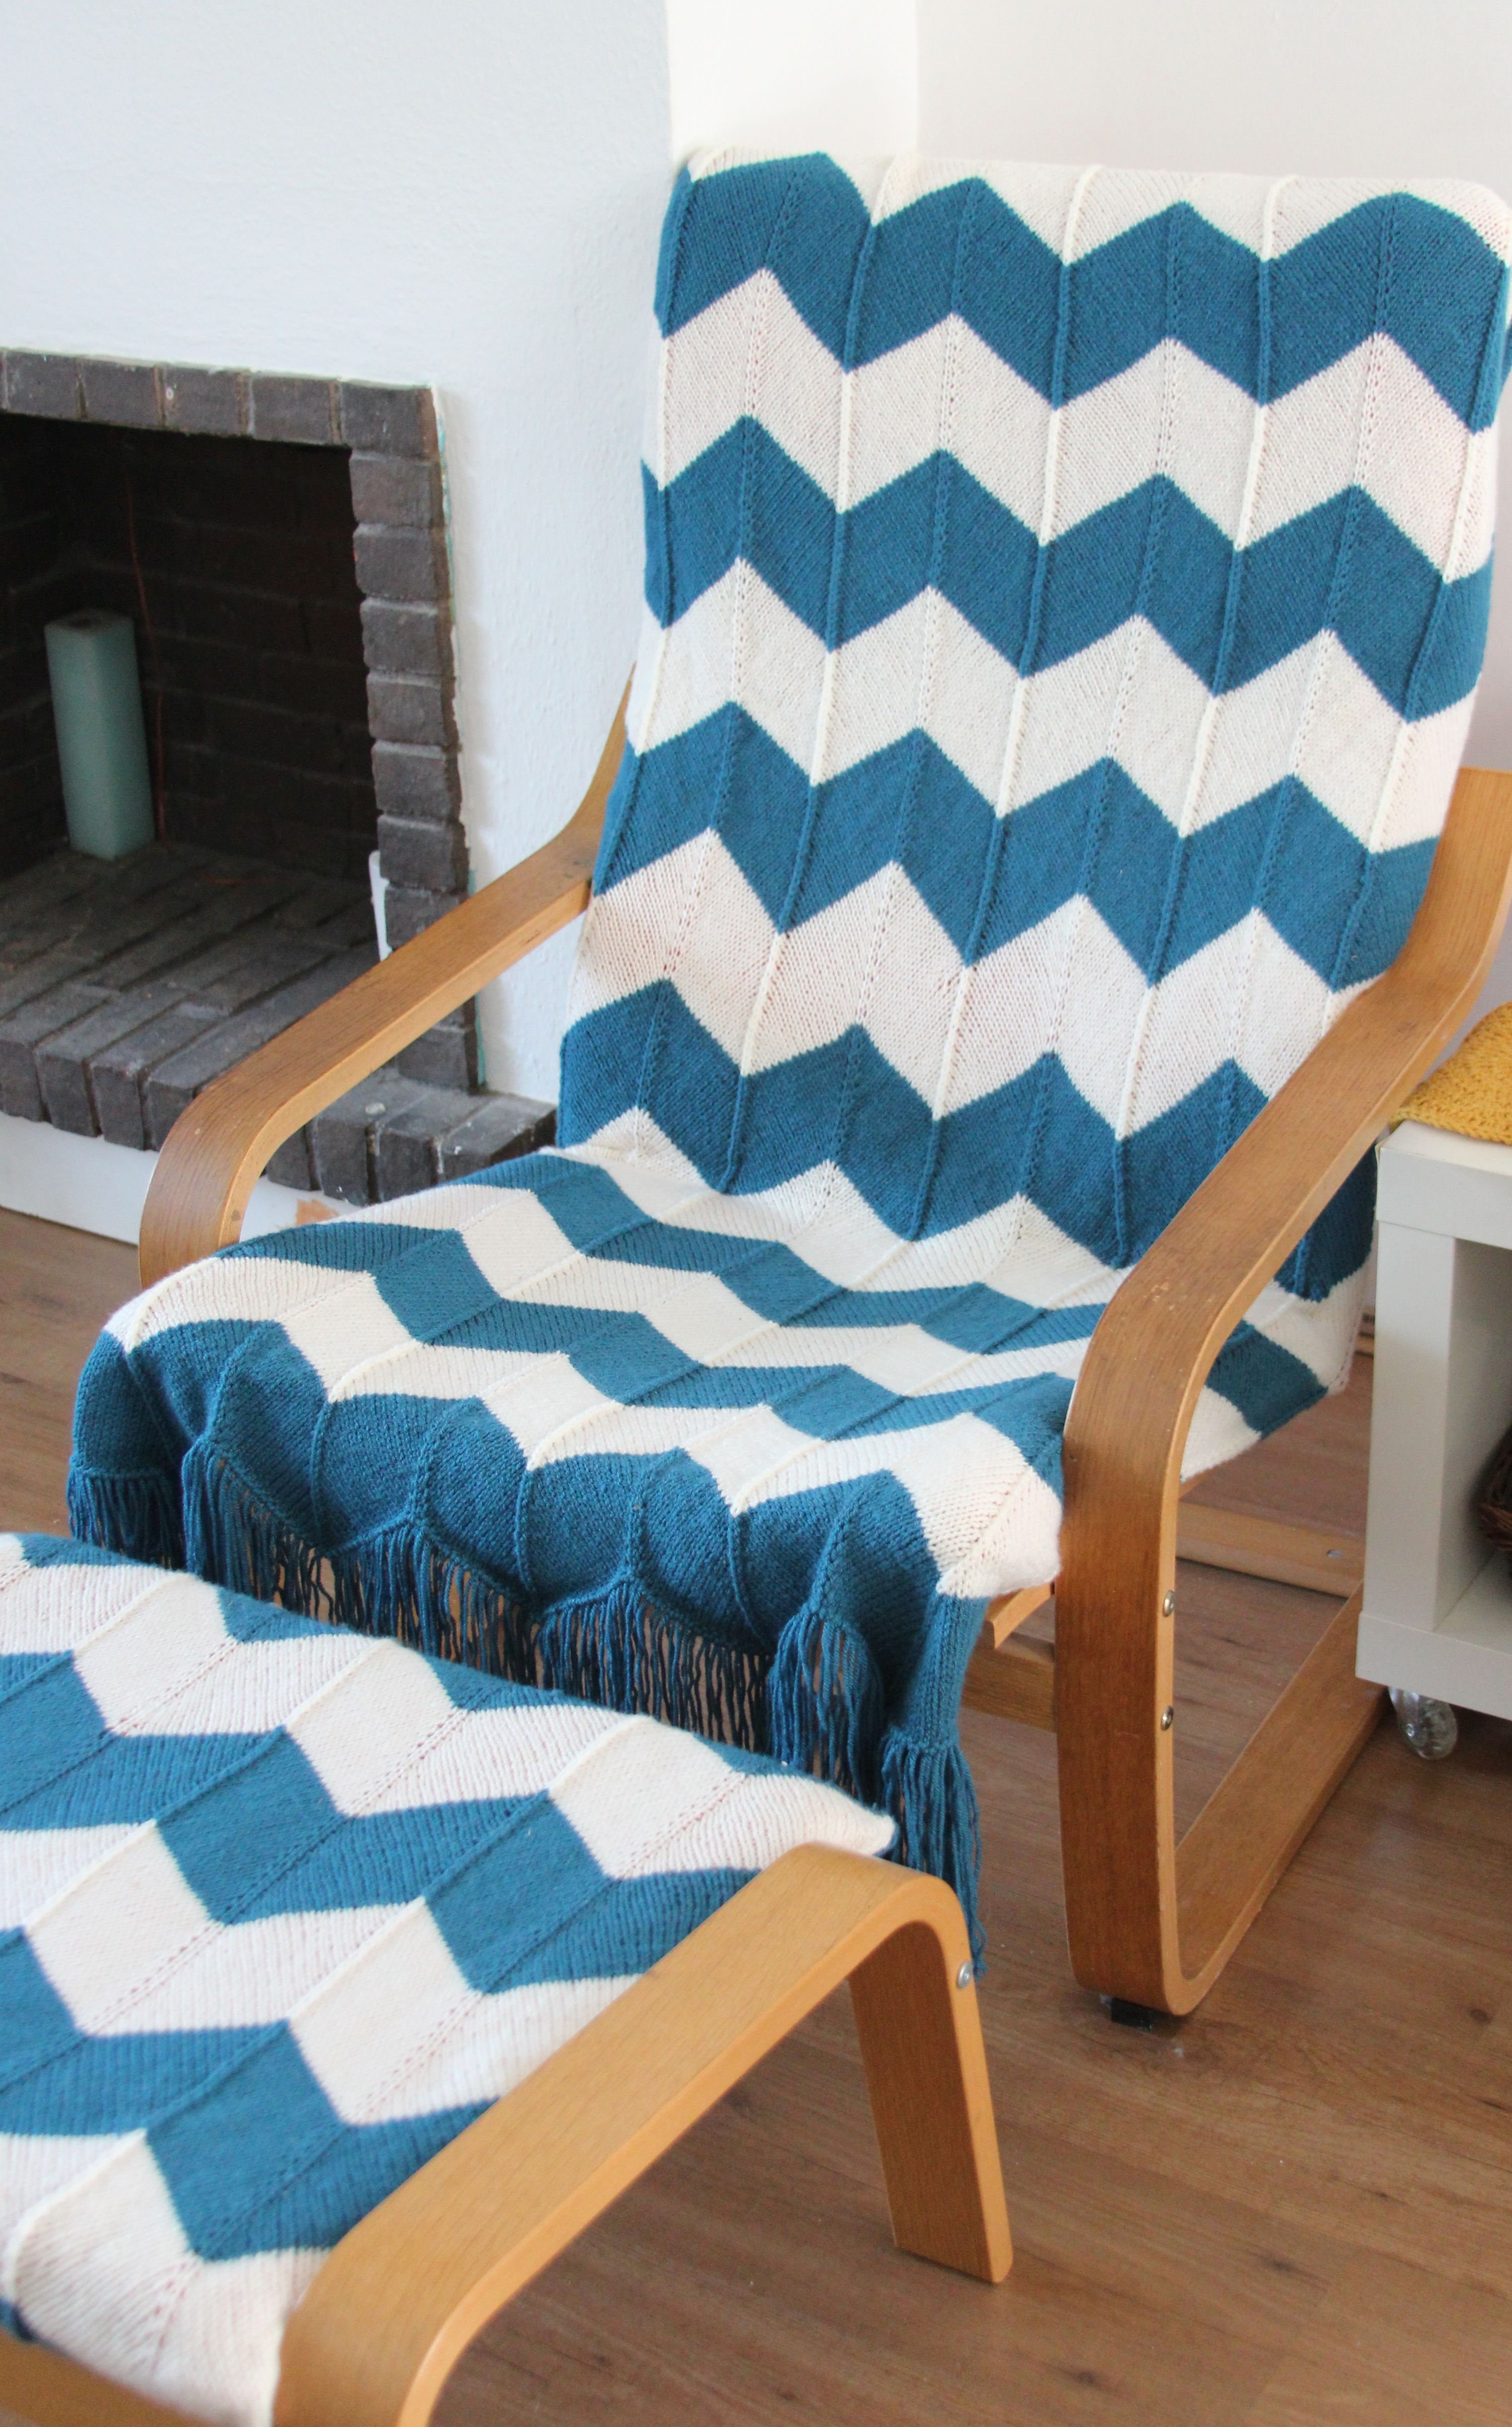 Uncategorized Poang Footstool easy update for an old ikea poang footstool and chair covers covers